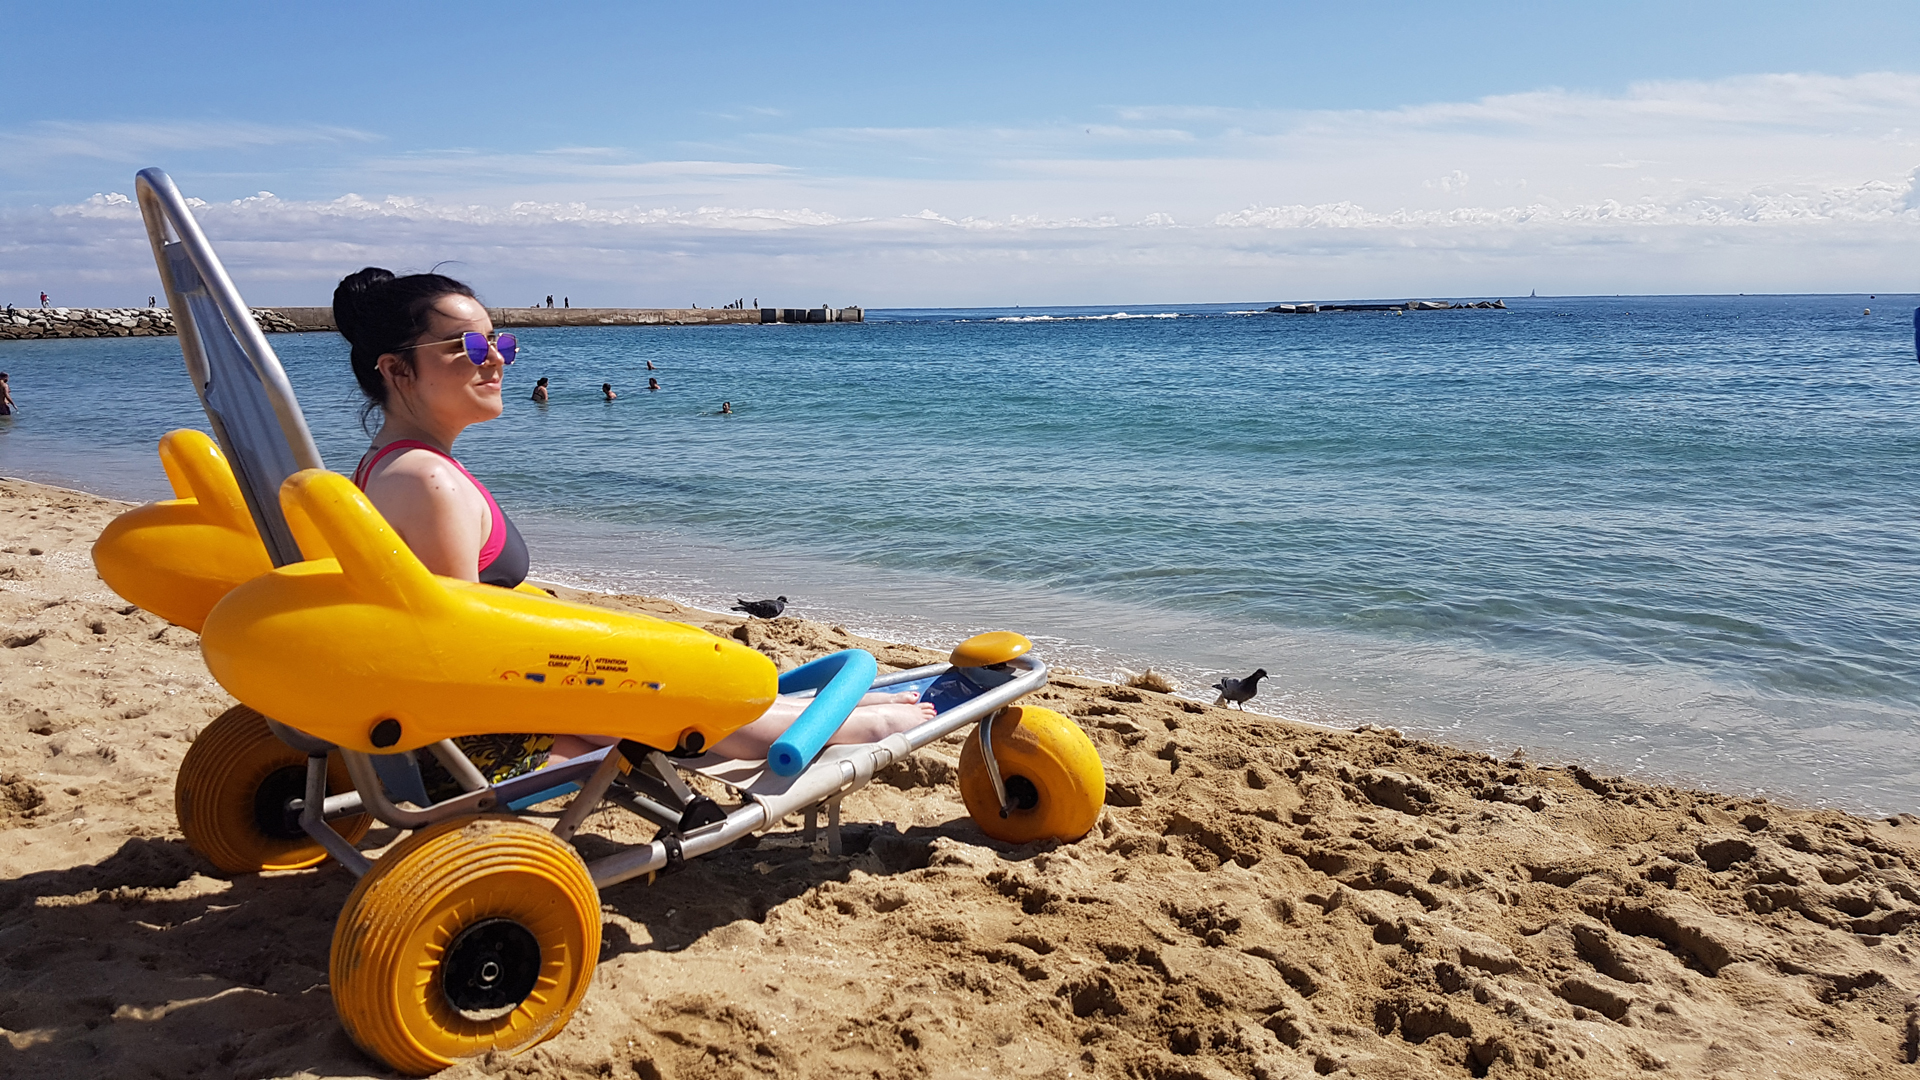 Emma sitting in a beach wheelchair at Barcelona beach : My Top 5 Best Travel Moments of 2017